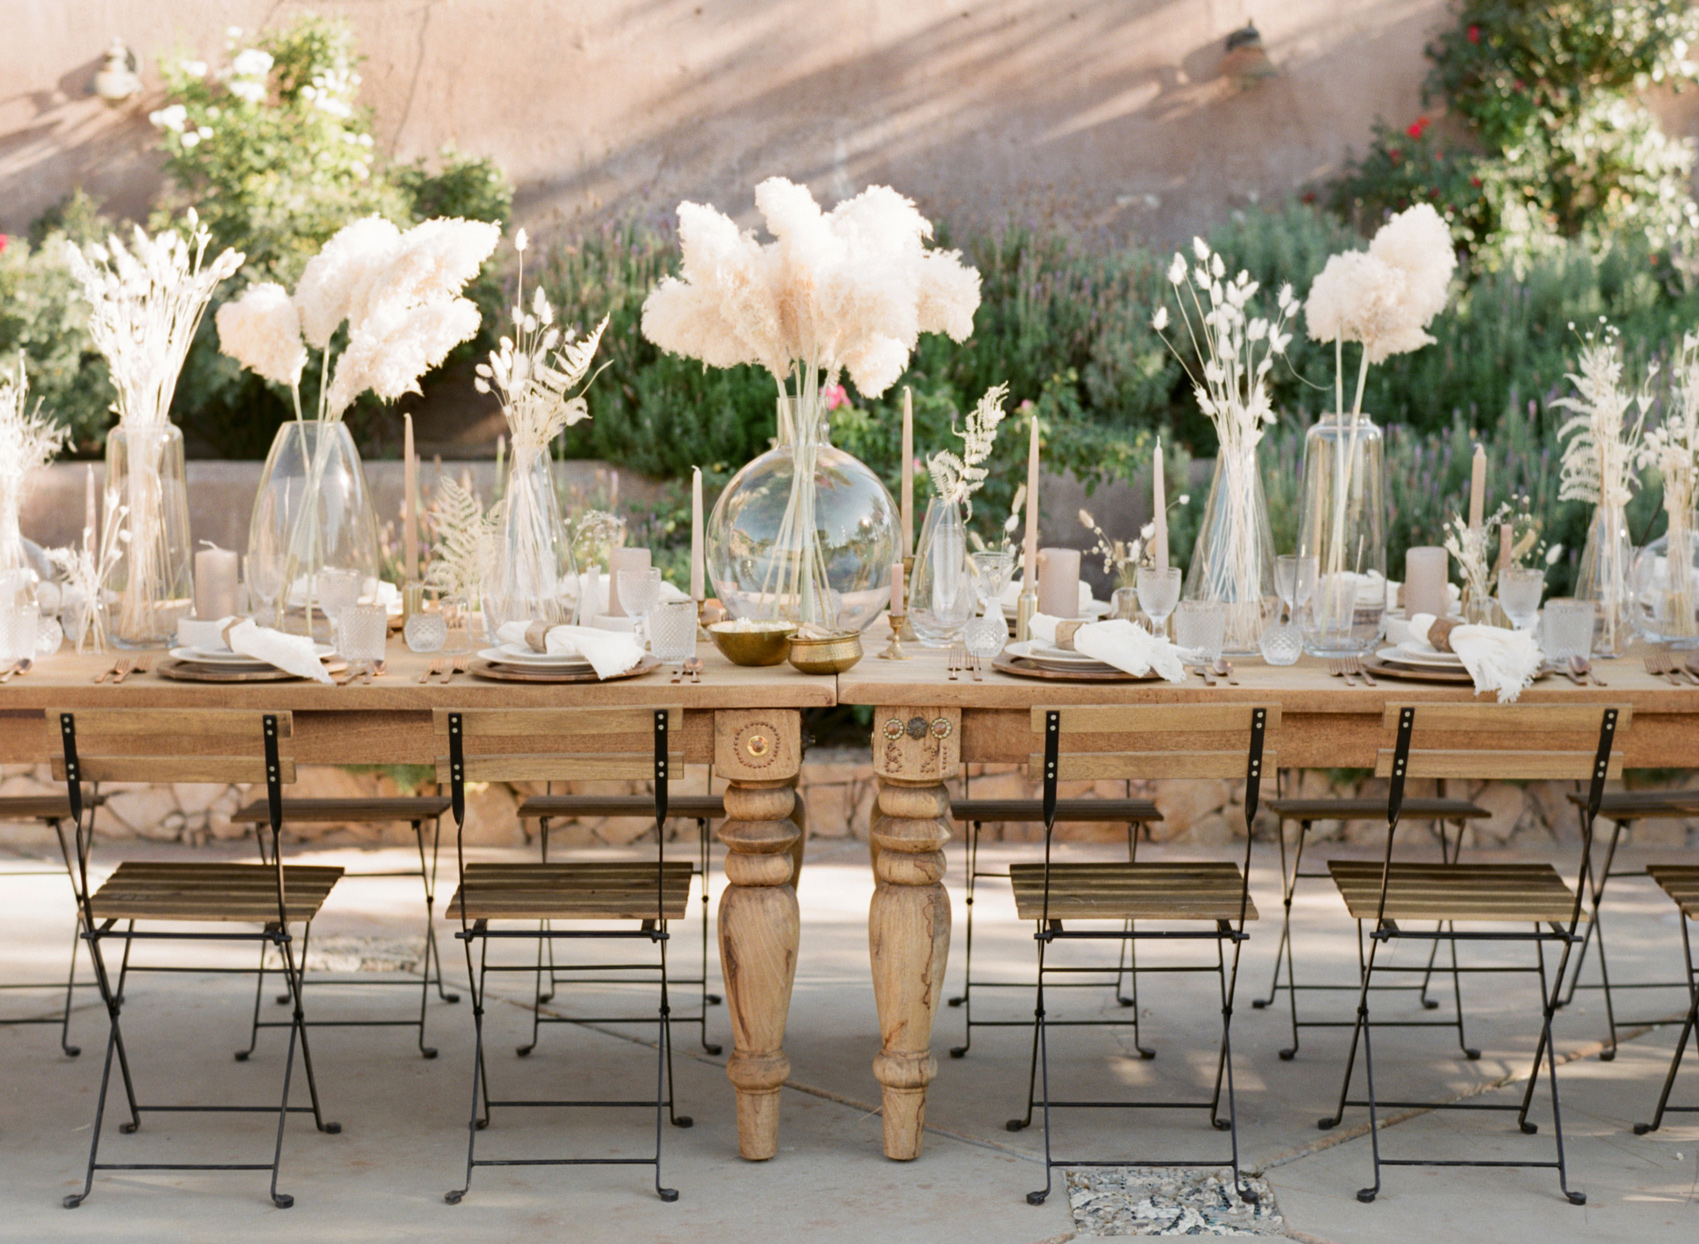 Long table set with candles, flowers, and plates